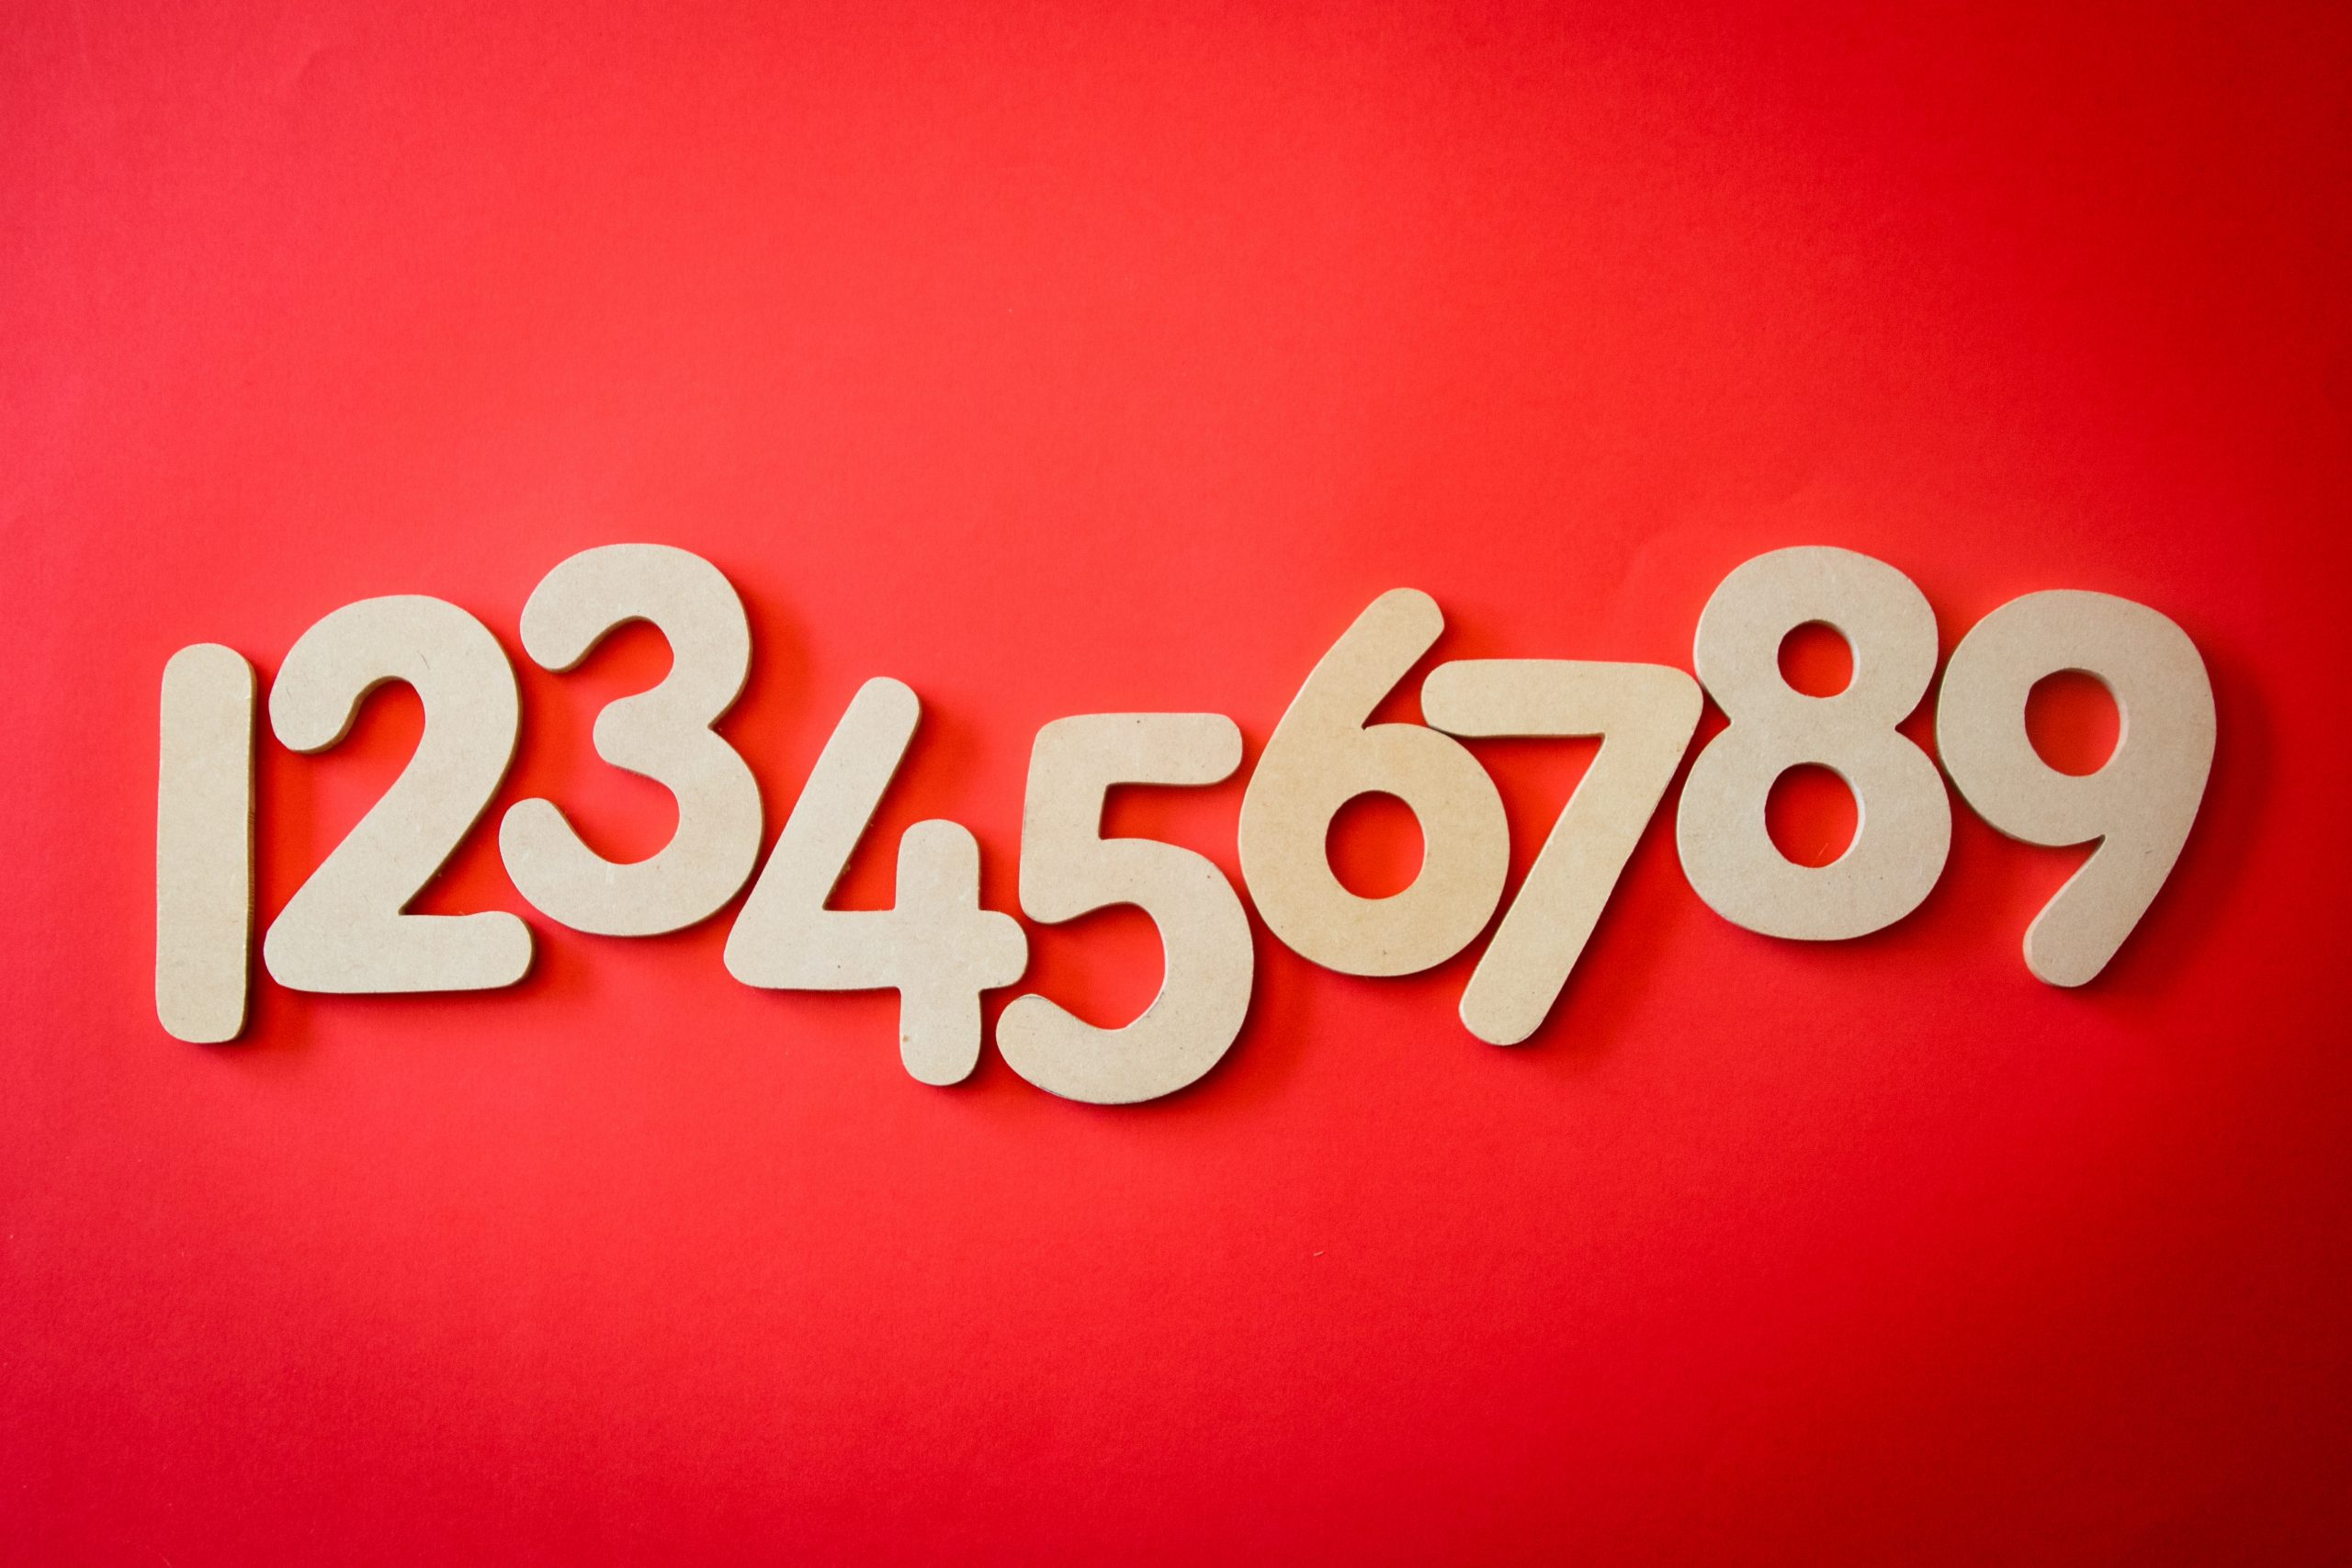 IT'S ALL ABOUT NUMBERS